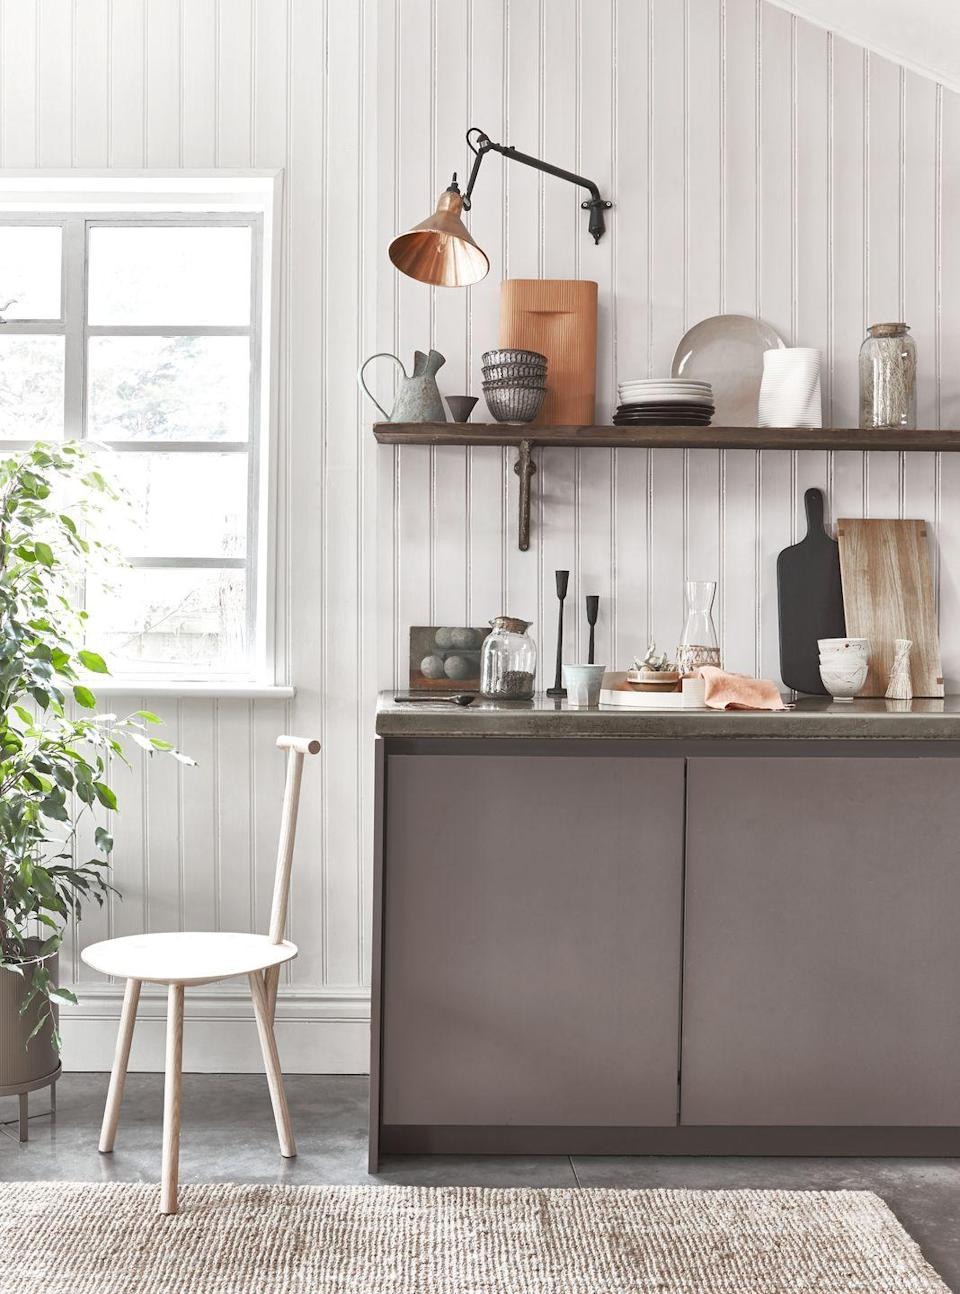 """<p>Restraint, functionality and craft are all pillars of both Japanese and Scandi design, and there's no better place to express this ethos than in the <a href=""""https://www.housebeautiful.com/uk/decorate/kitchen/g423/best-kitchen-design-trends/"""" rel=""""nofollow noopener"""" target=""""_blank"""" data-ylk=""""slk:kitchen"""" class=""""link rapid-noclick-resp"""">kitchen</a>.</p>"""